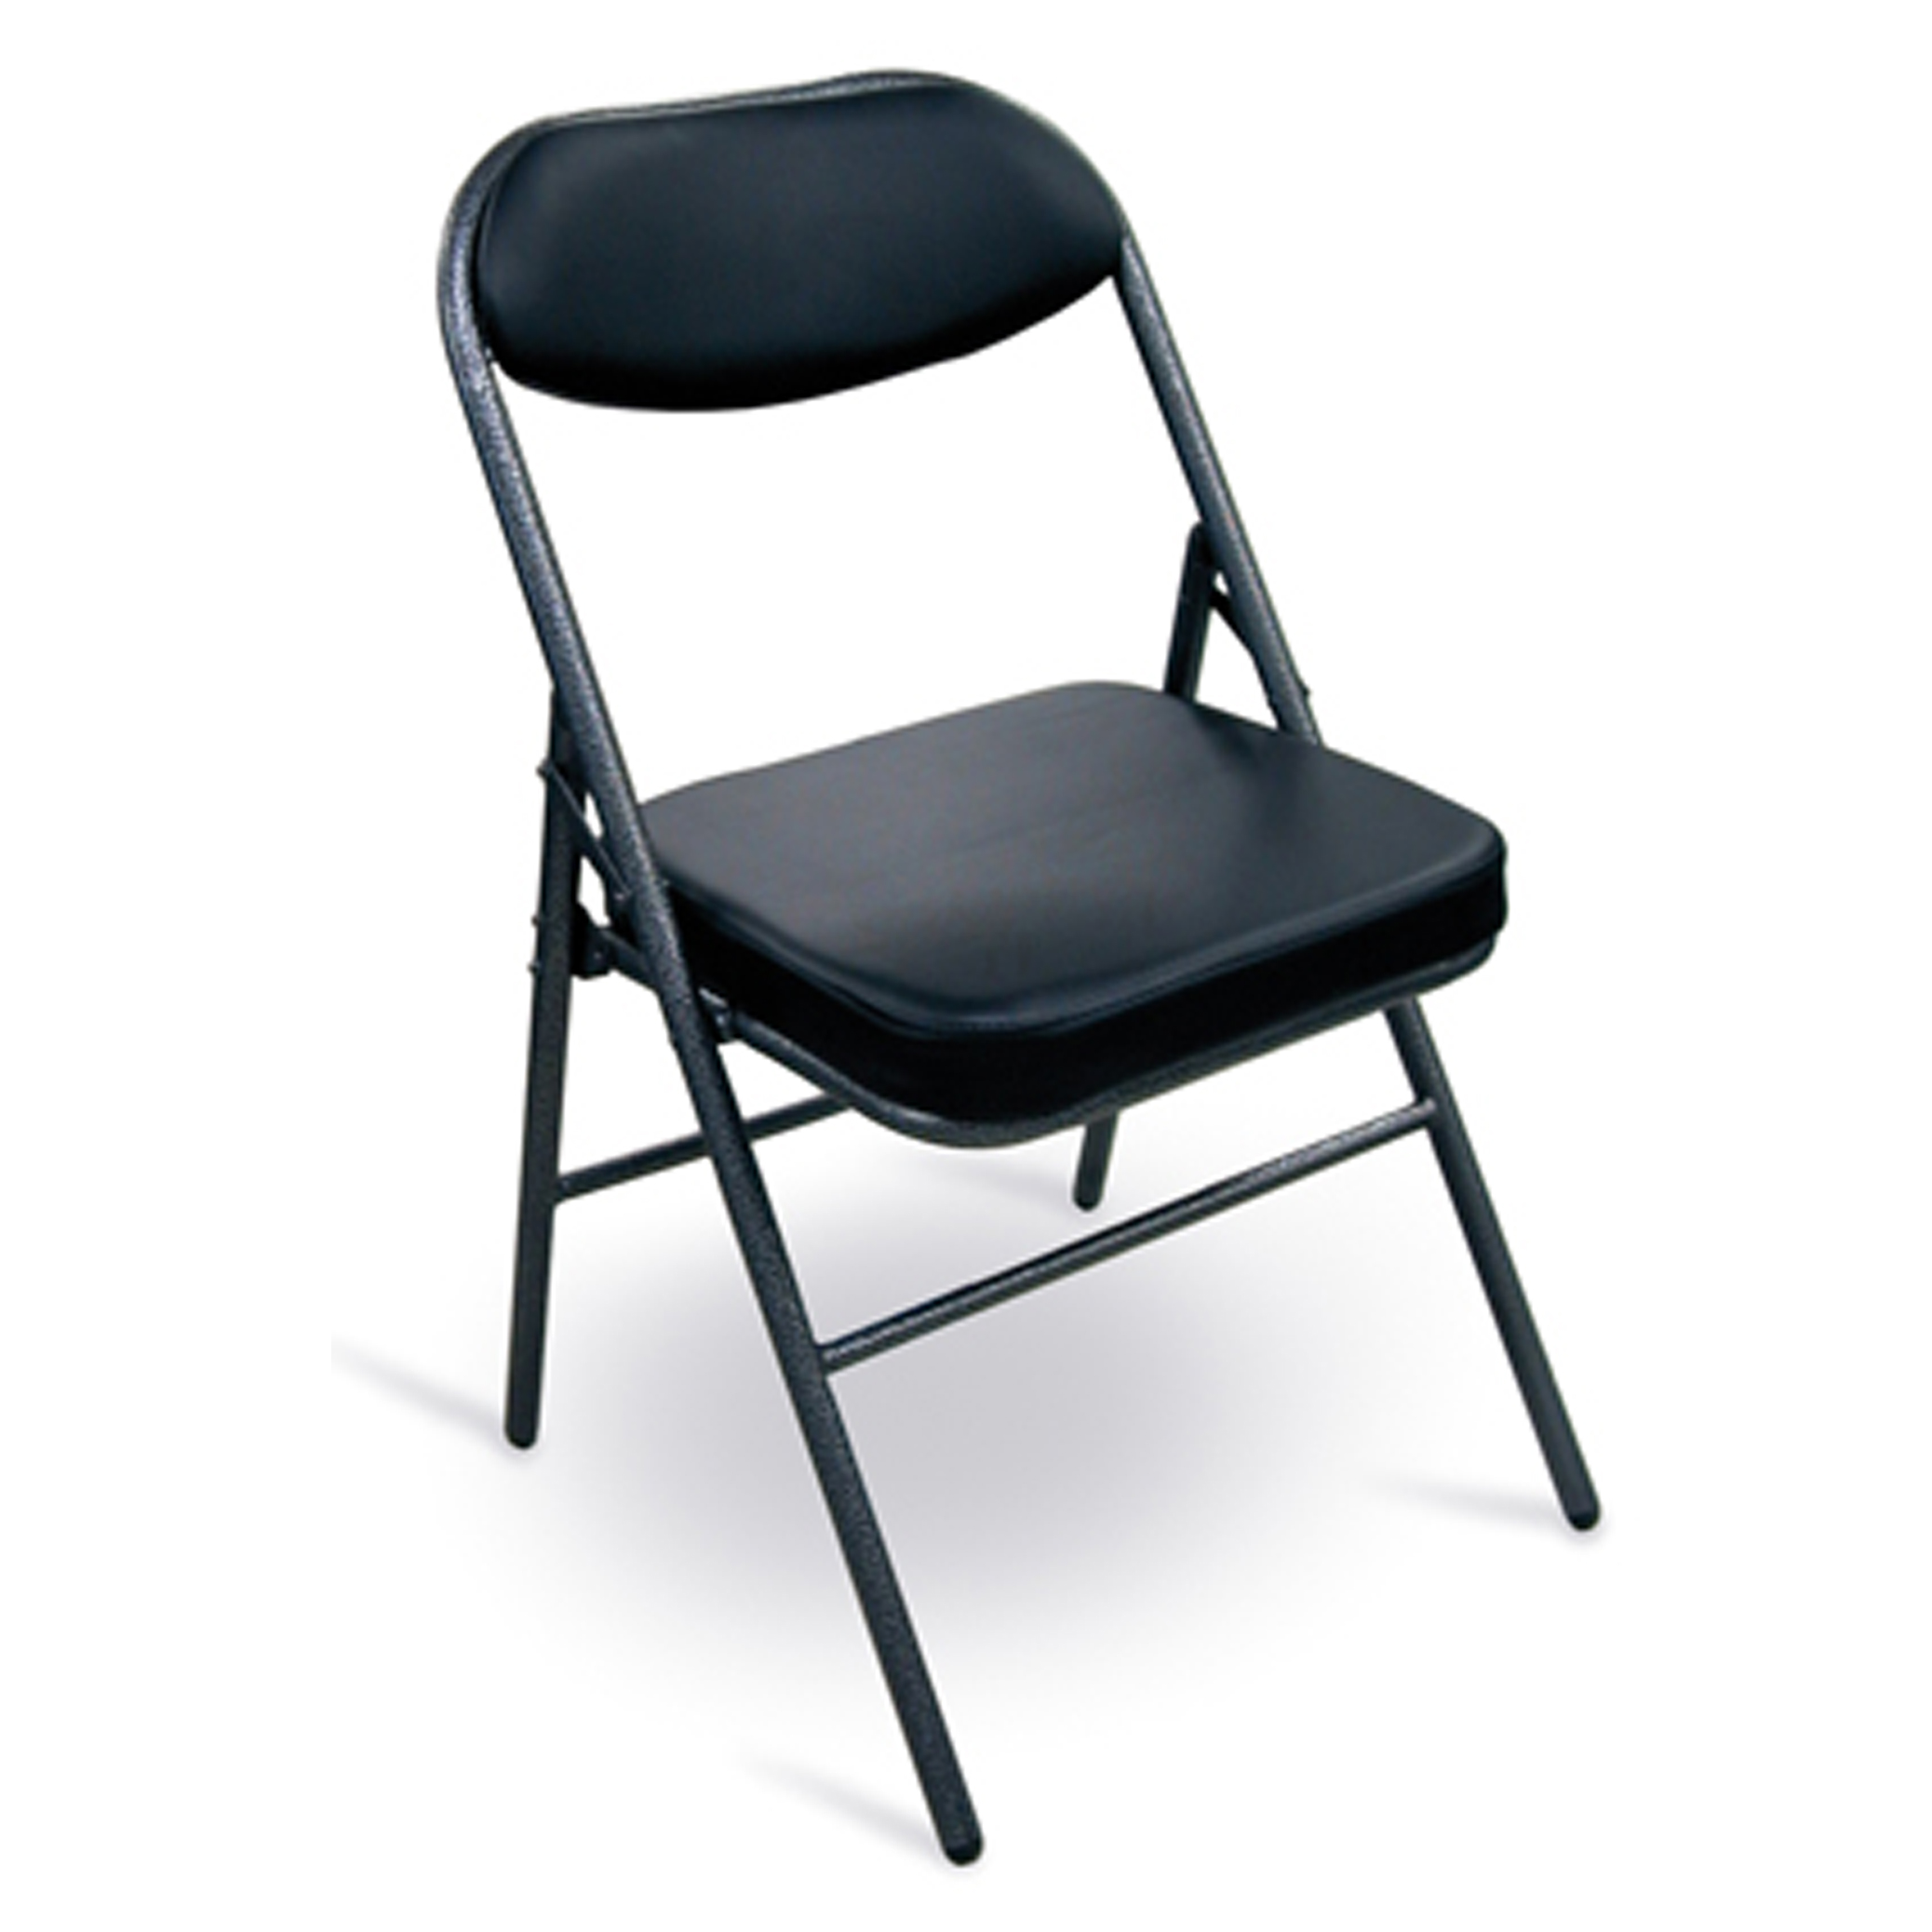 Series 5 Folding Chair fice Furniture Chicago New Rental Used